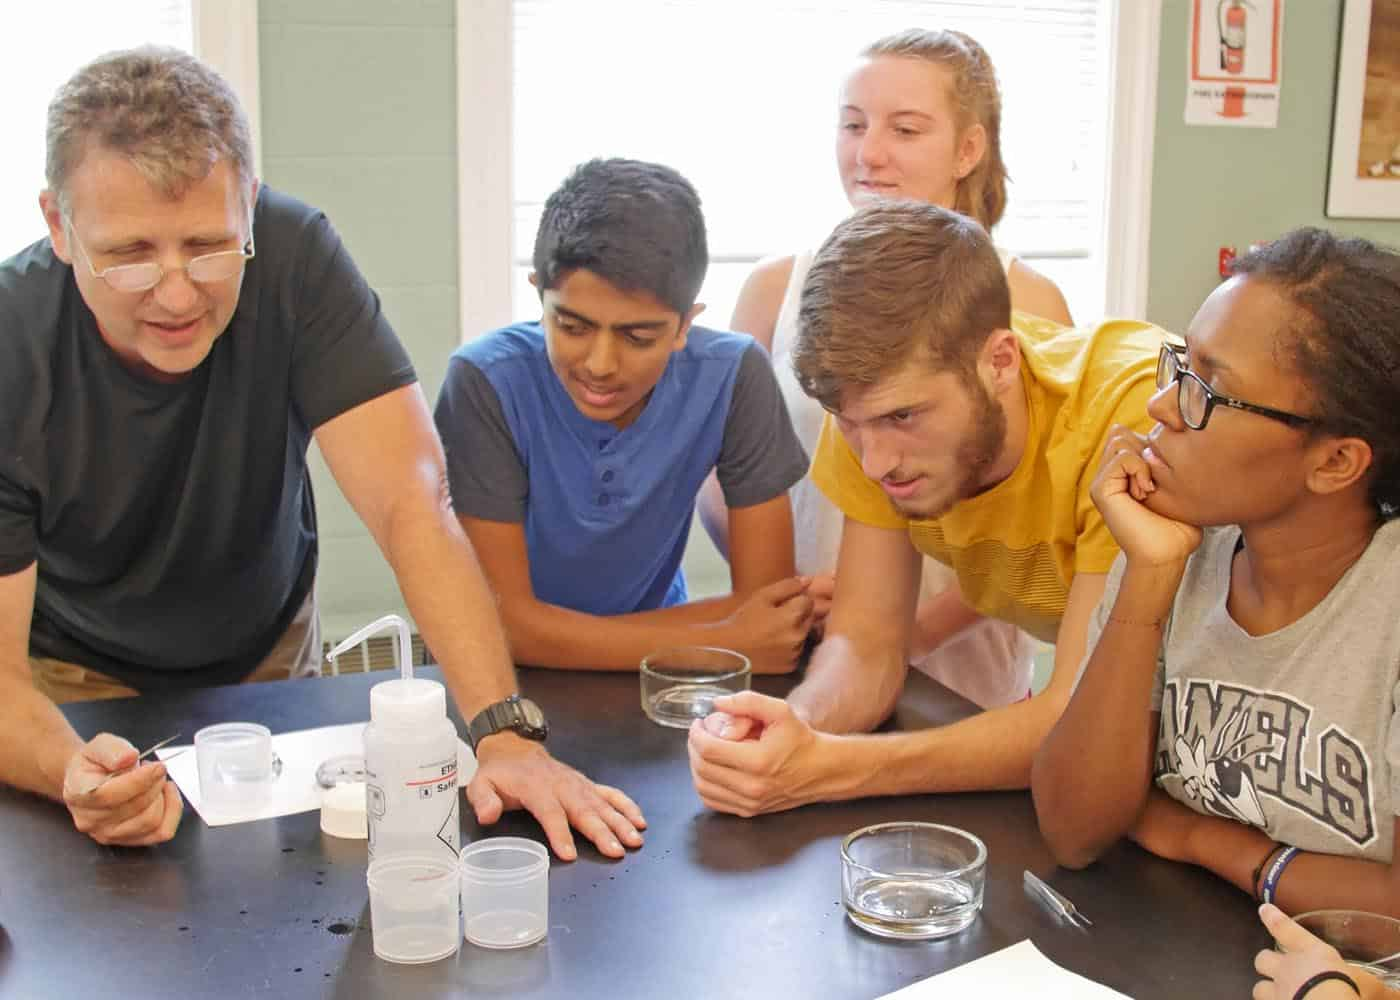 WPU students and faculty conduct experiments in the lab.